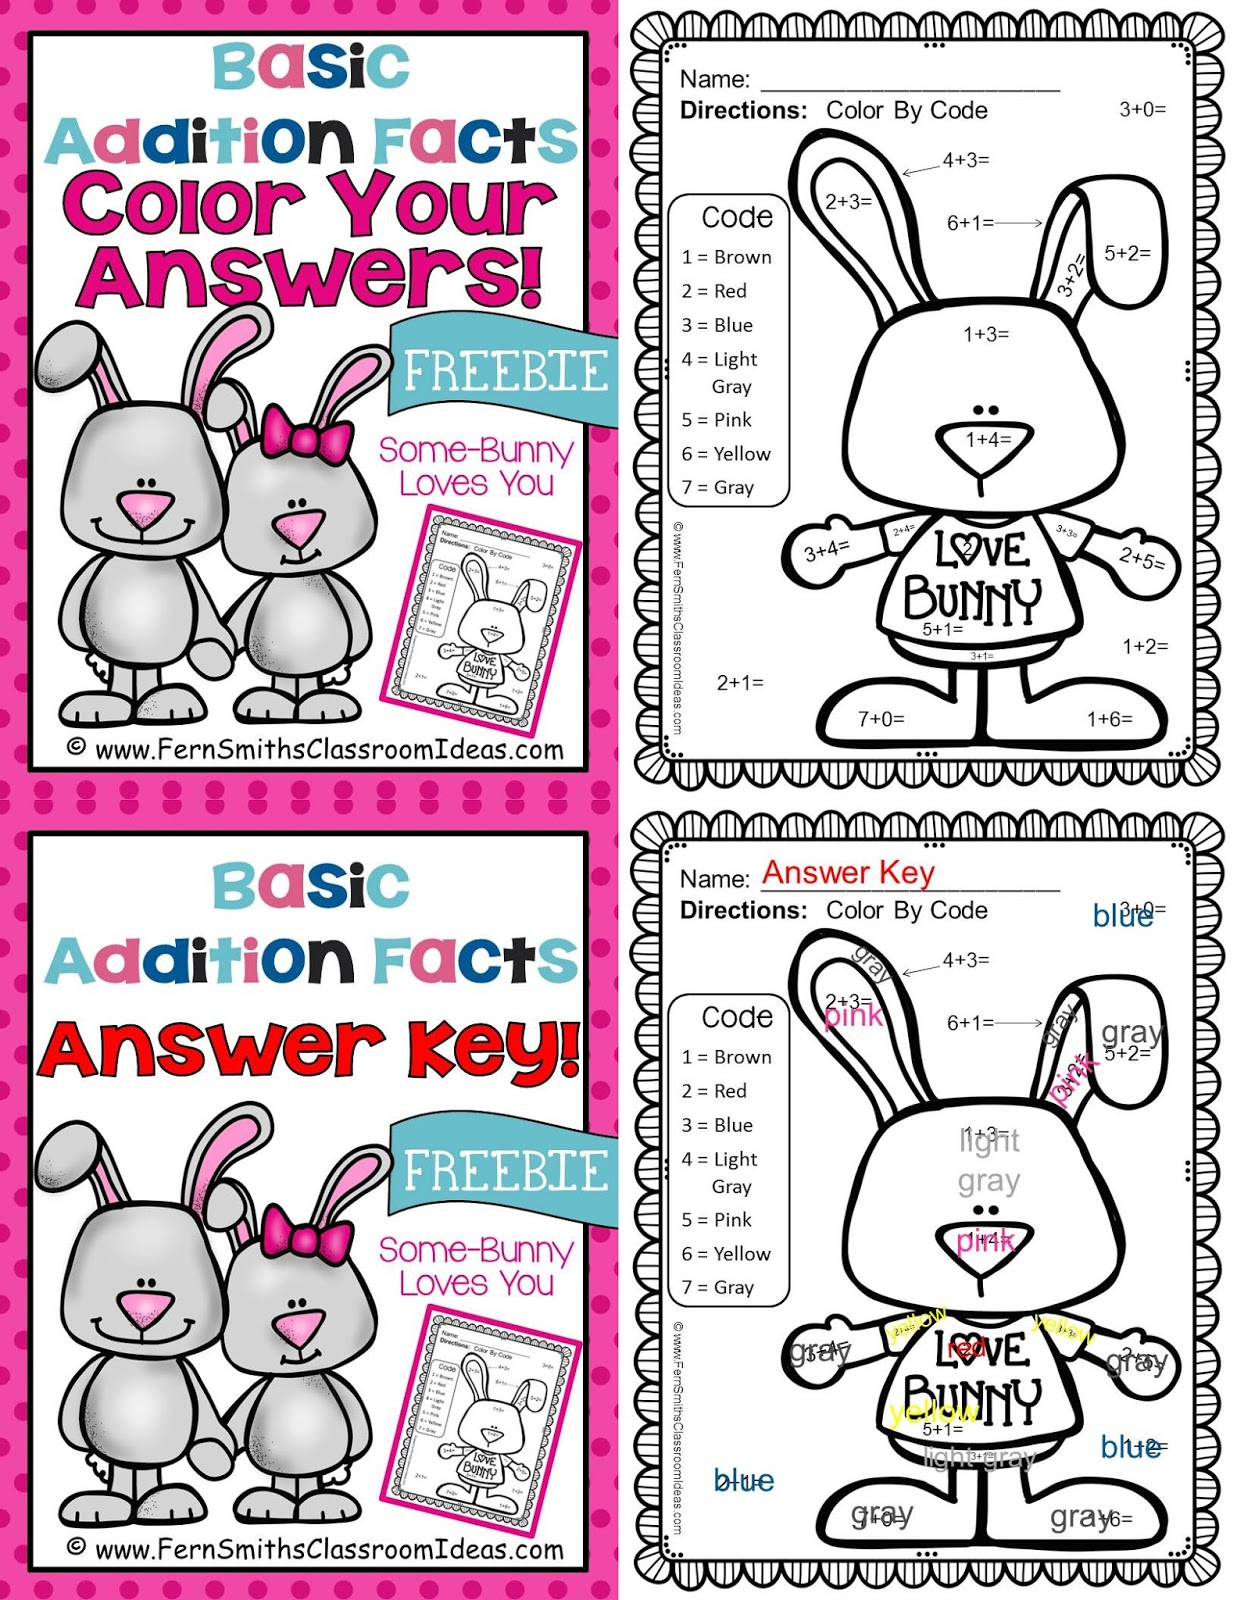 Fern Smith's Classroom Ideas Freebie Friday ~ FREE St. Valentine's Day Fun! Basic Addition - Color Your Answers Printable